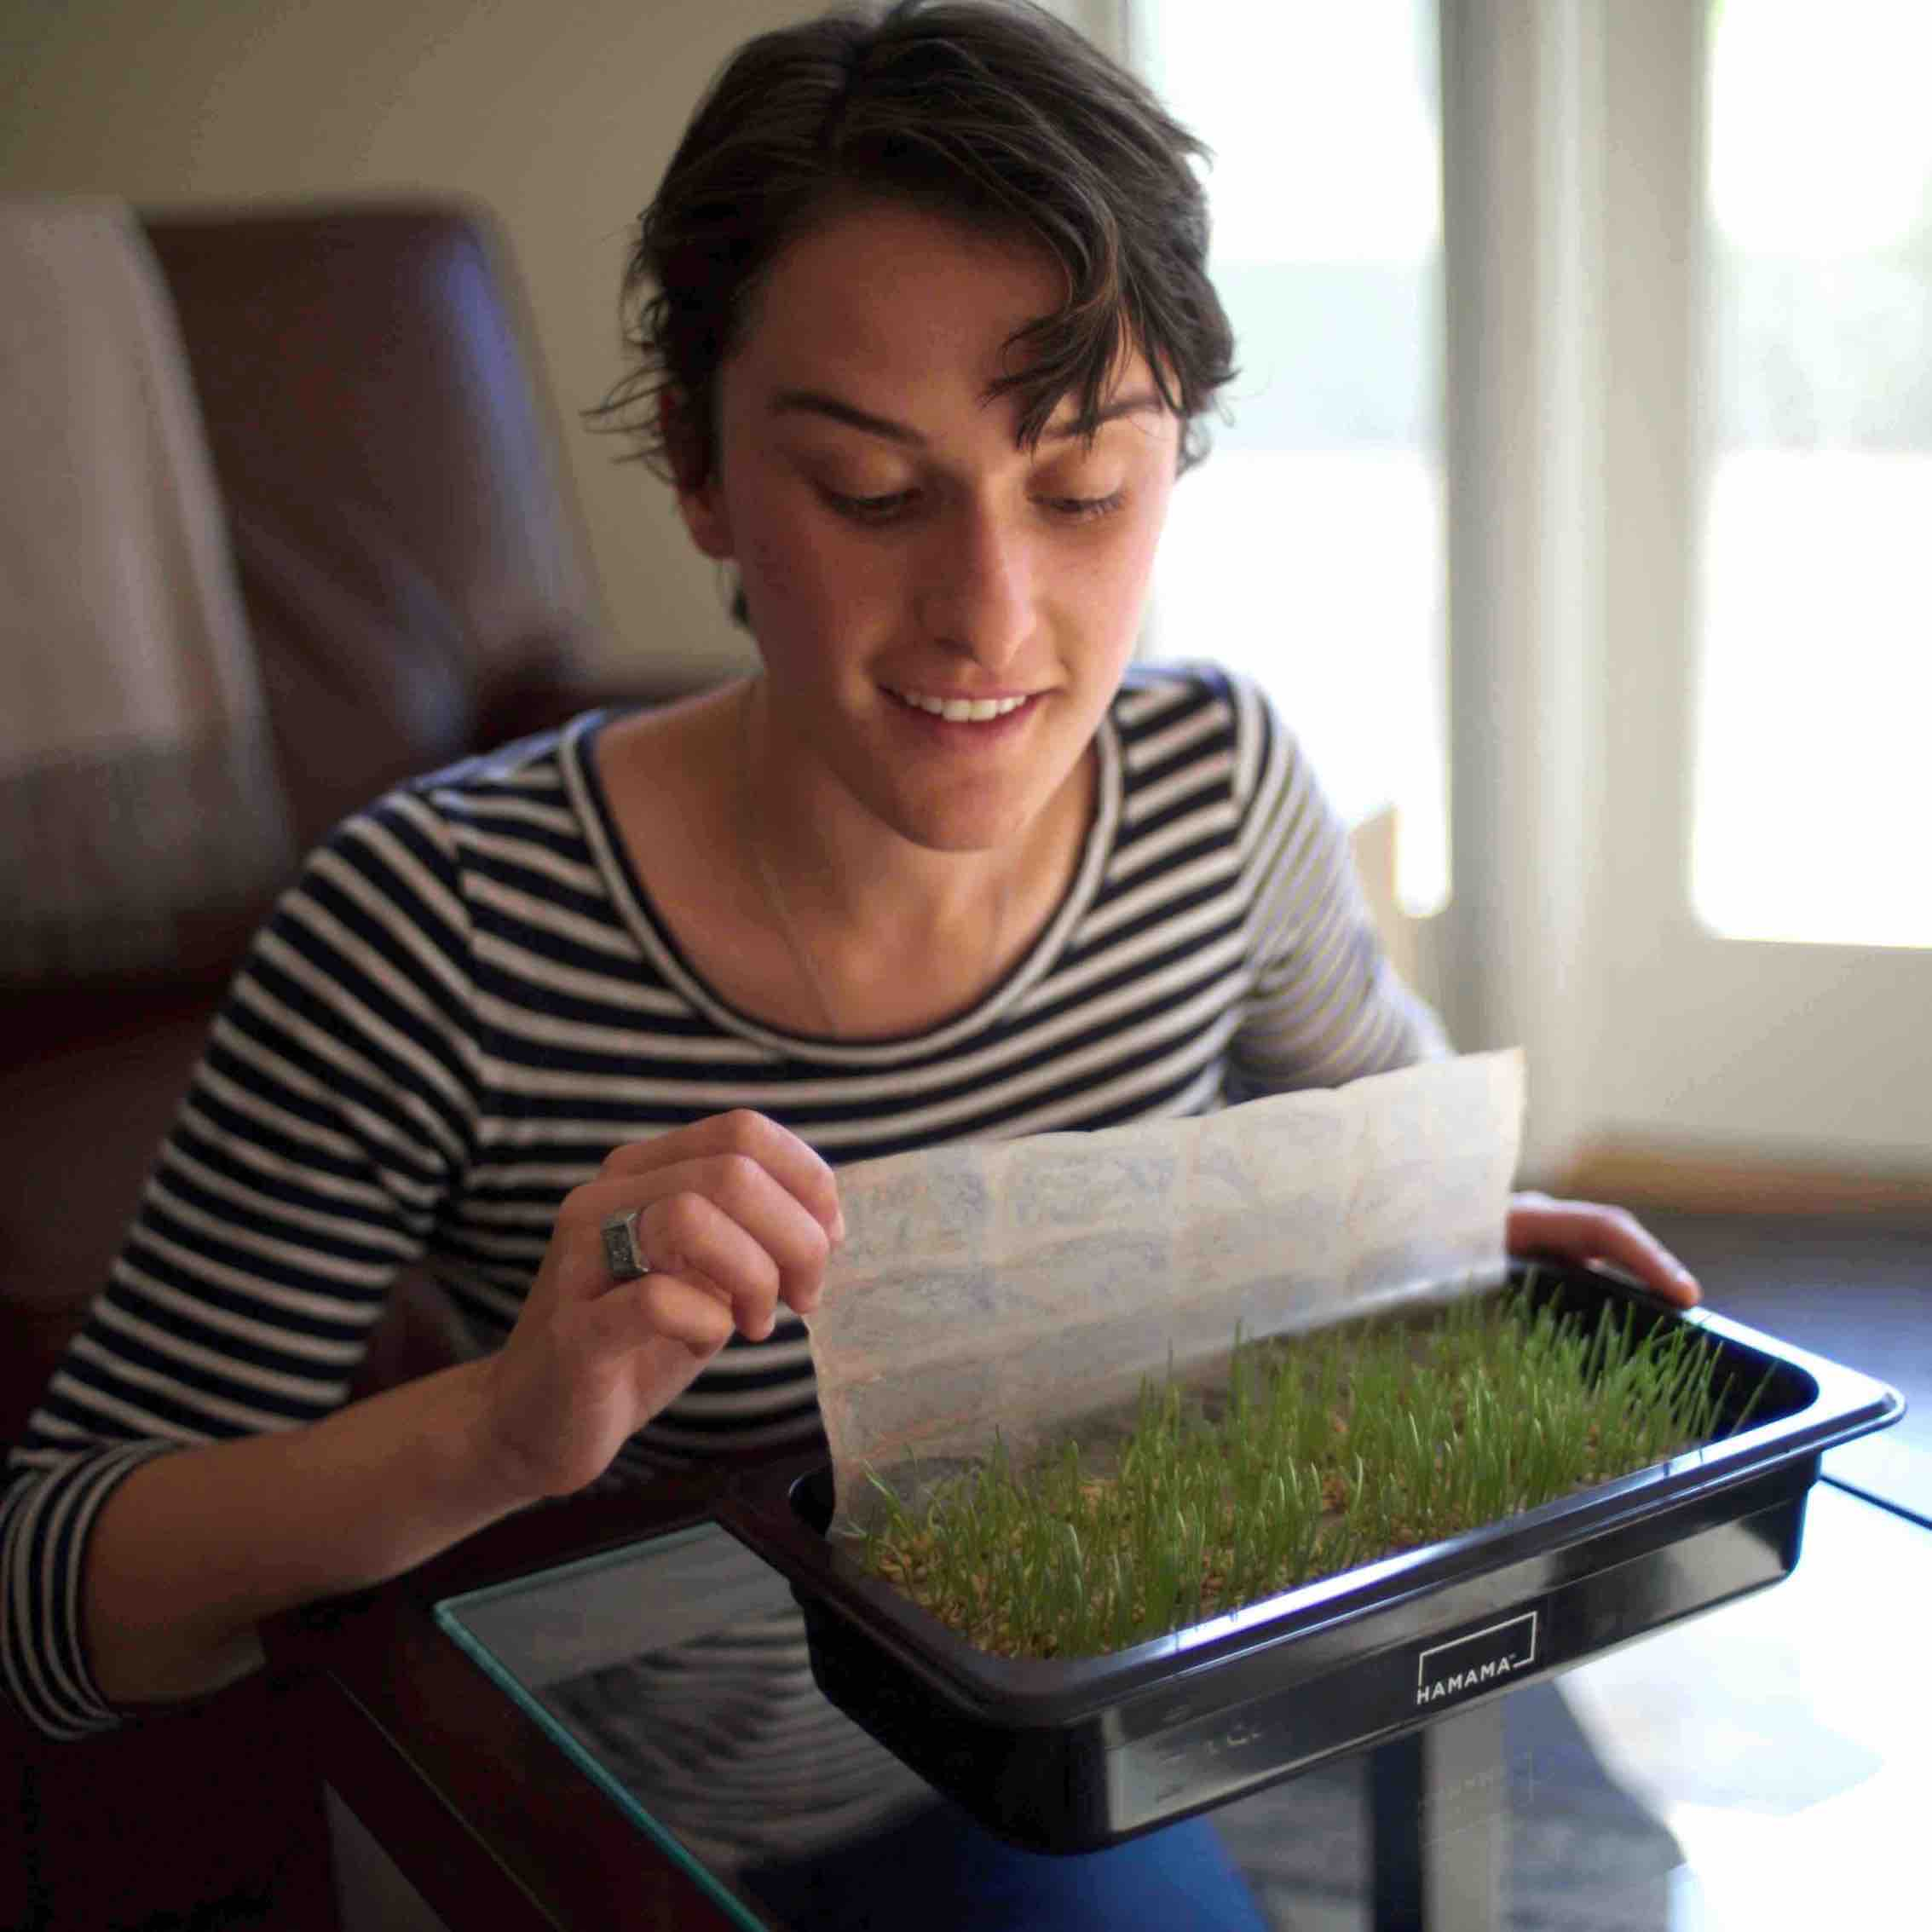 Woman showing how to grow wheatgrass in a wheatgrass kit at home.